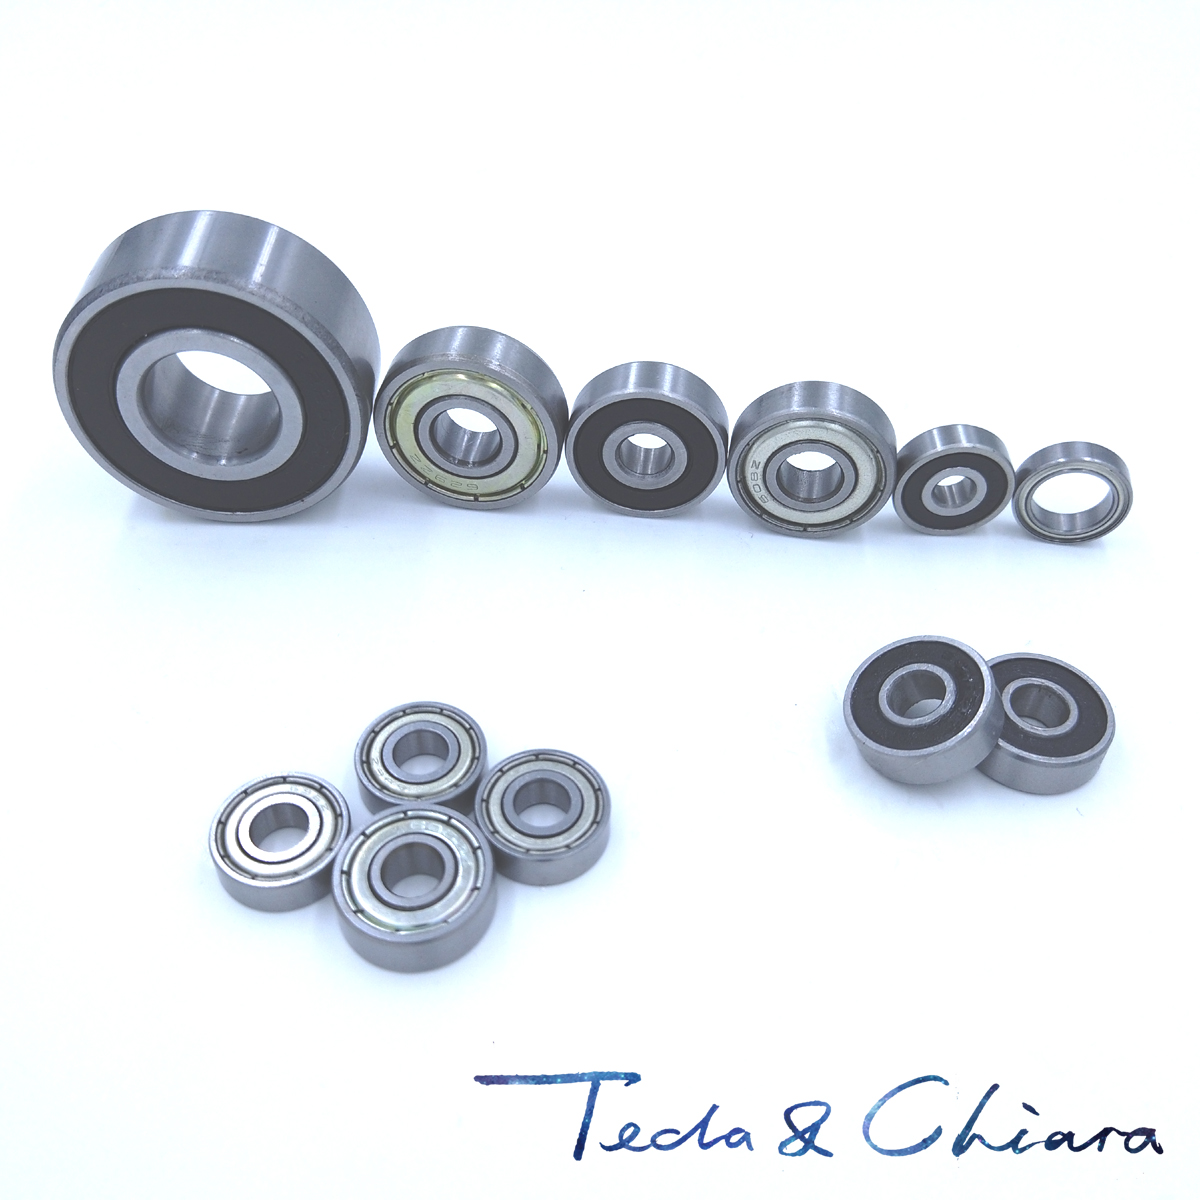 6807 6807ZZ 6807RS 6807-2Z 6807Z 6807-2RS ZZ RS RZ 2RZ Deep Groove Ball Bearings 35 X 47 X 7mm